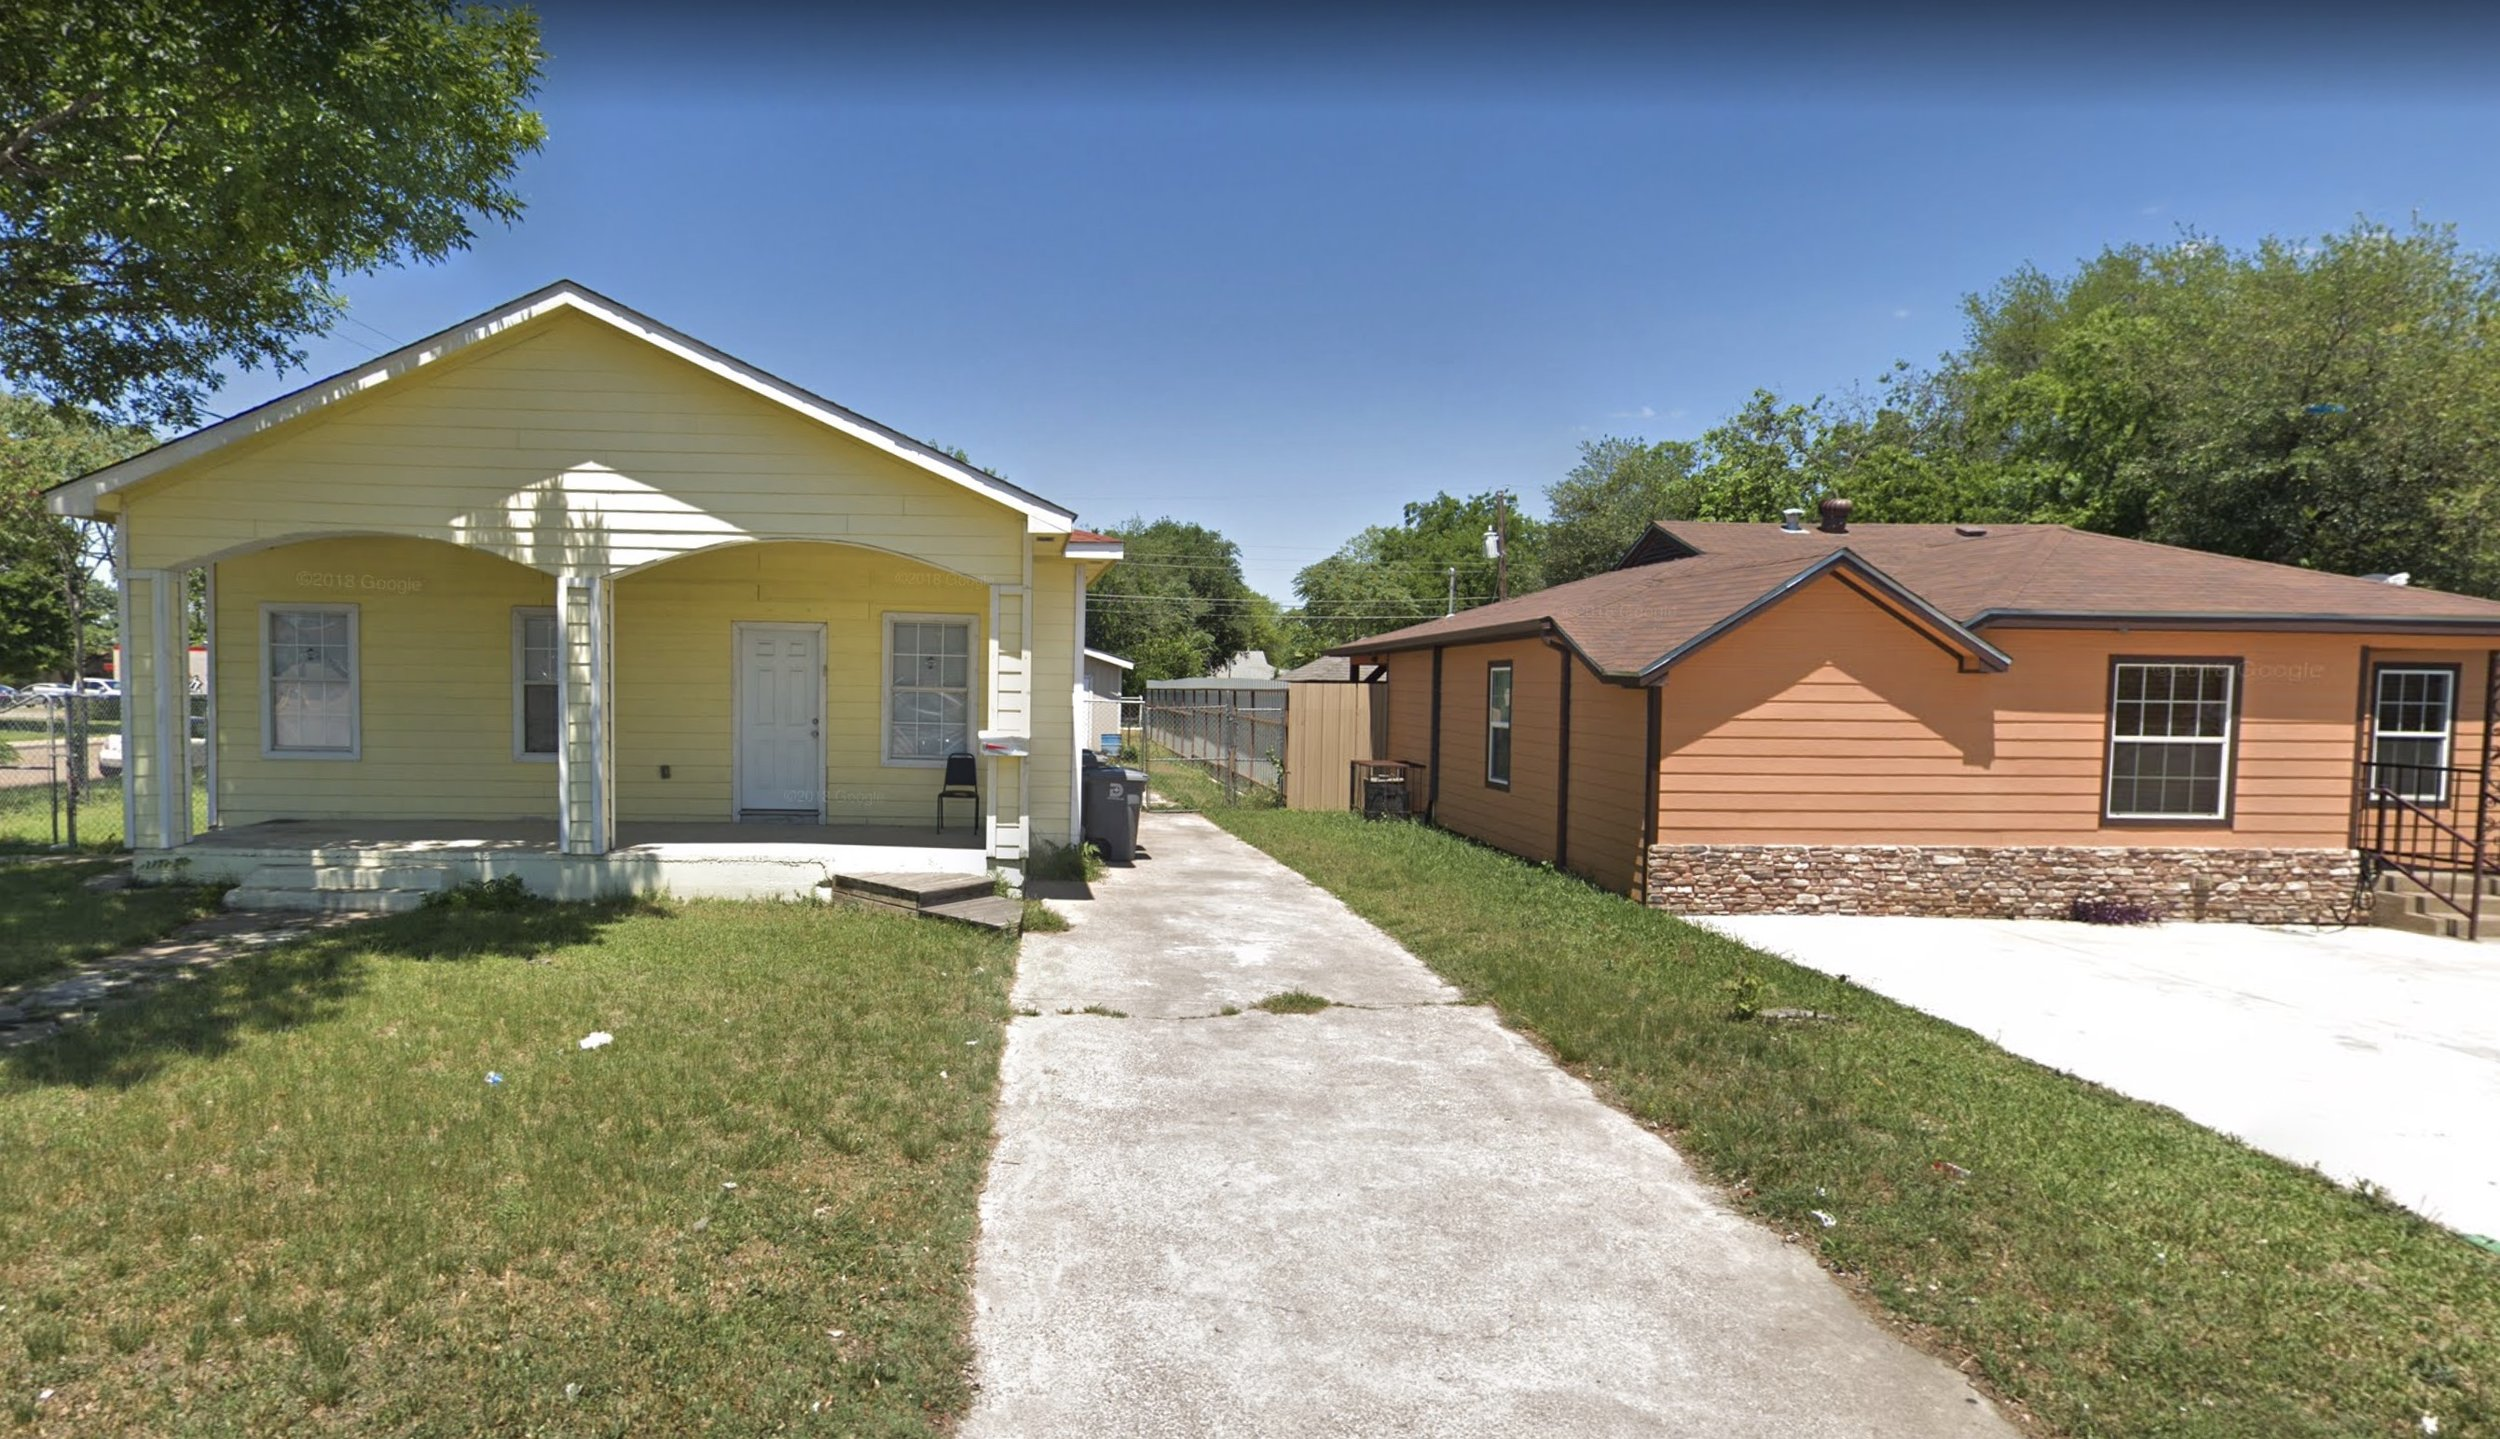 2219 W Illinois Ave, the yellow house on the left.